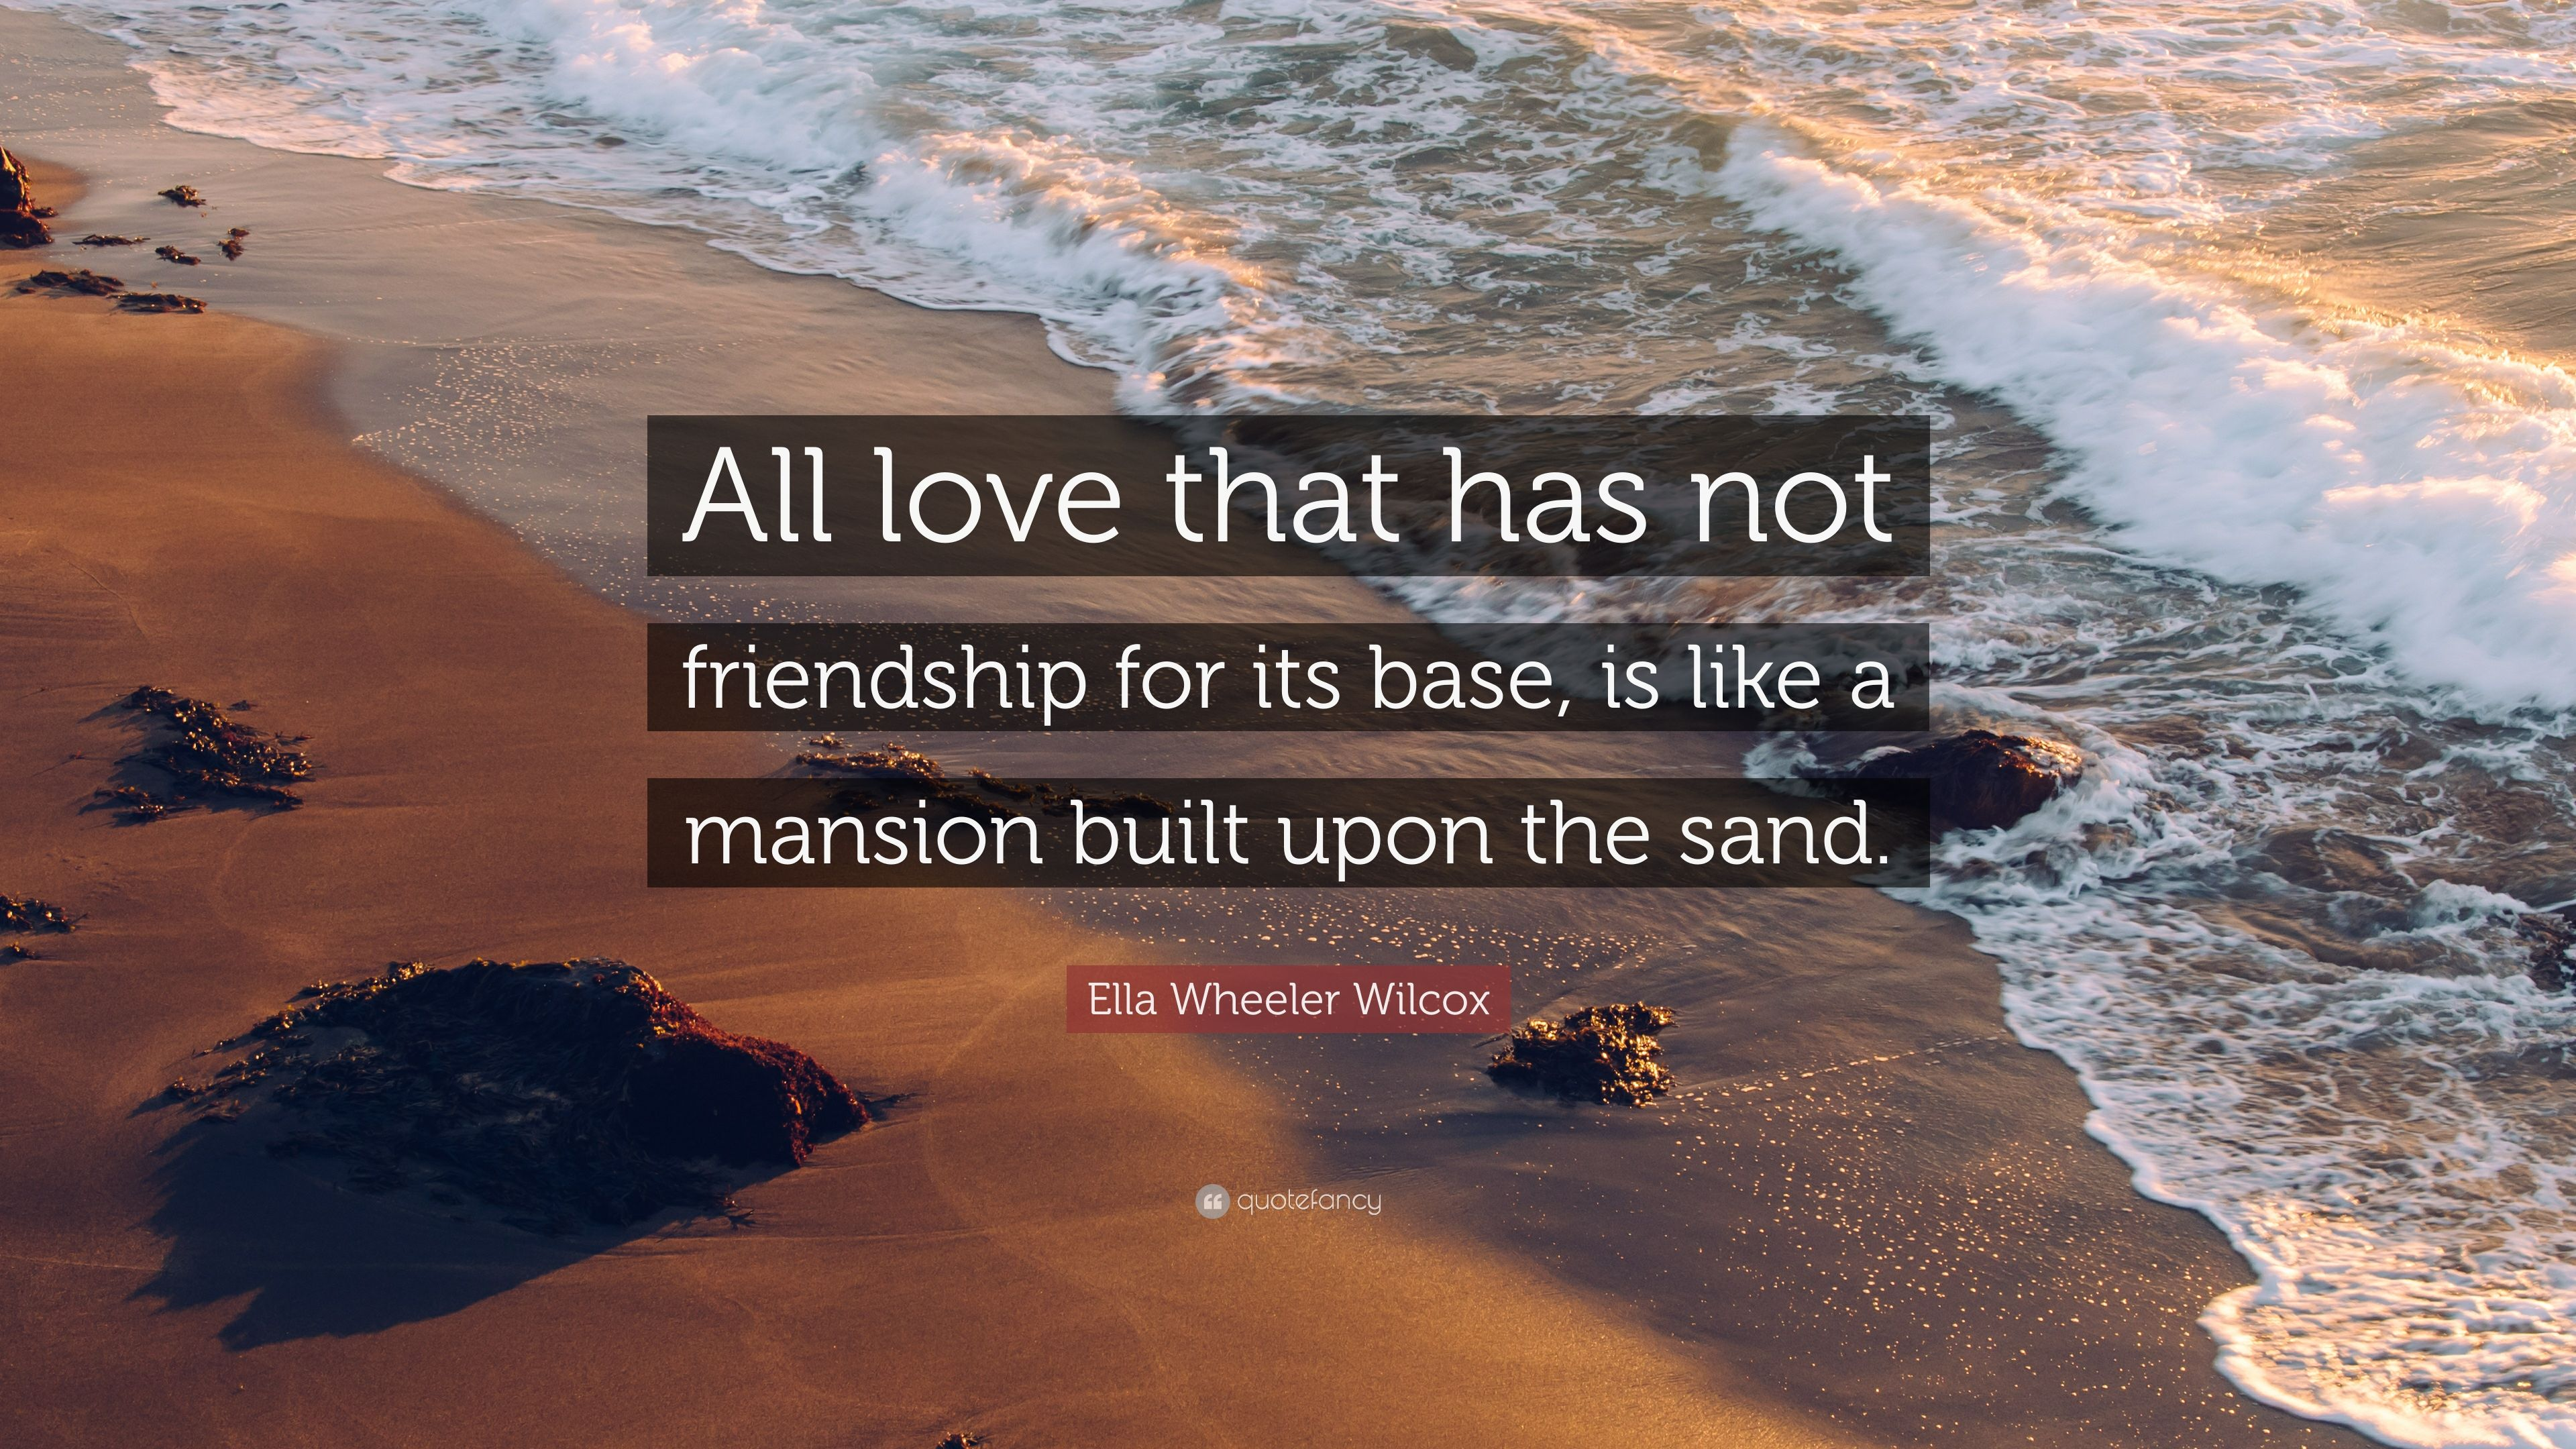 All love that has not friendship for its base, is like a mansion built upon the sand.